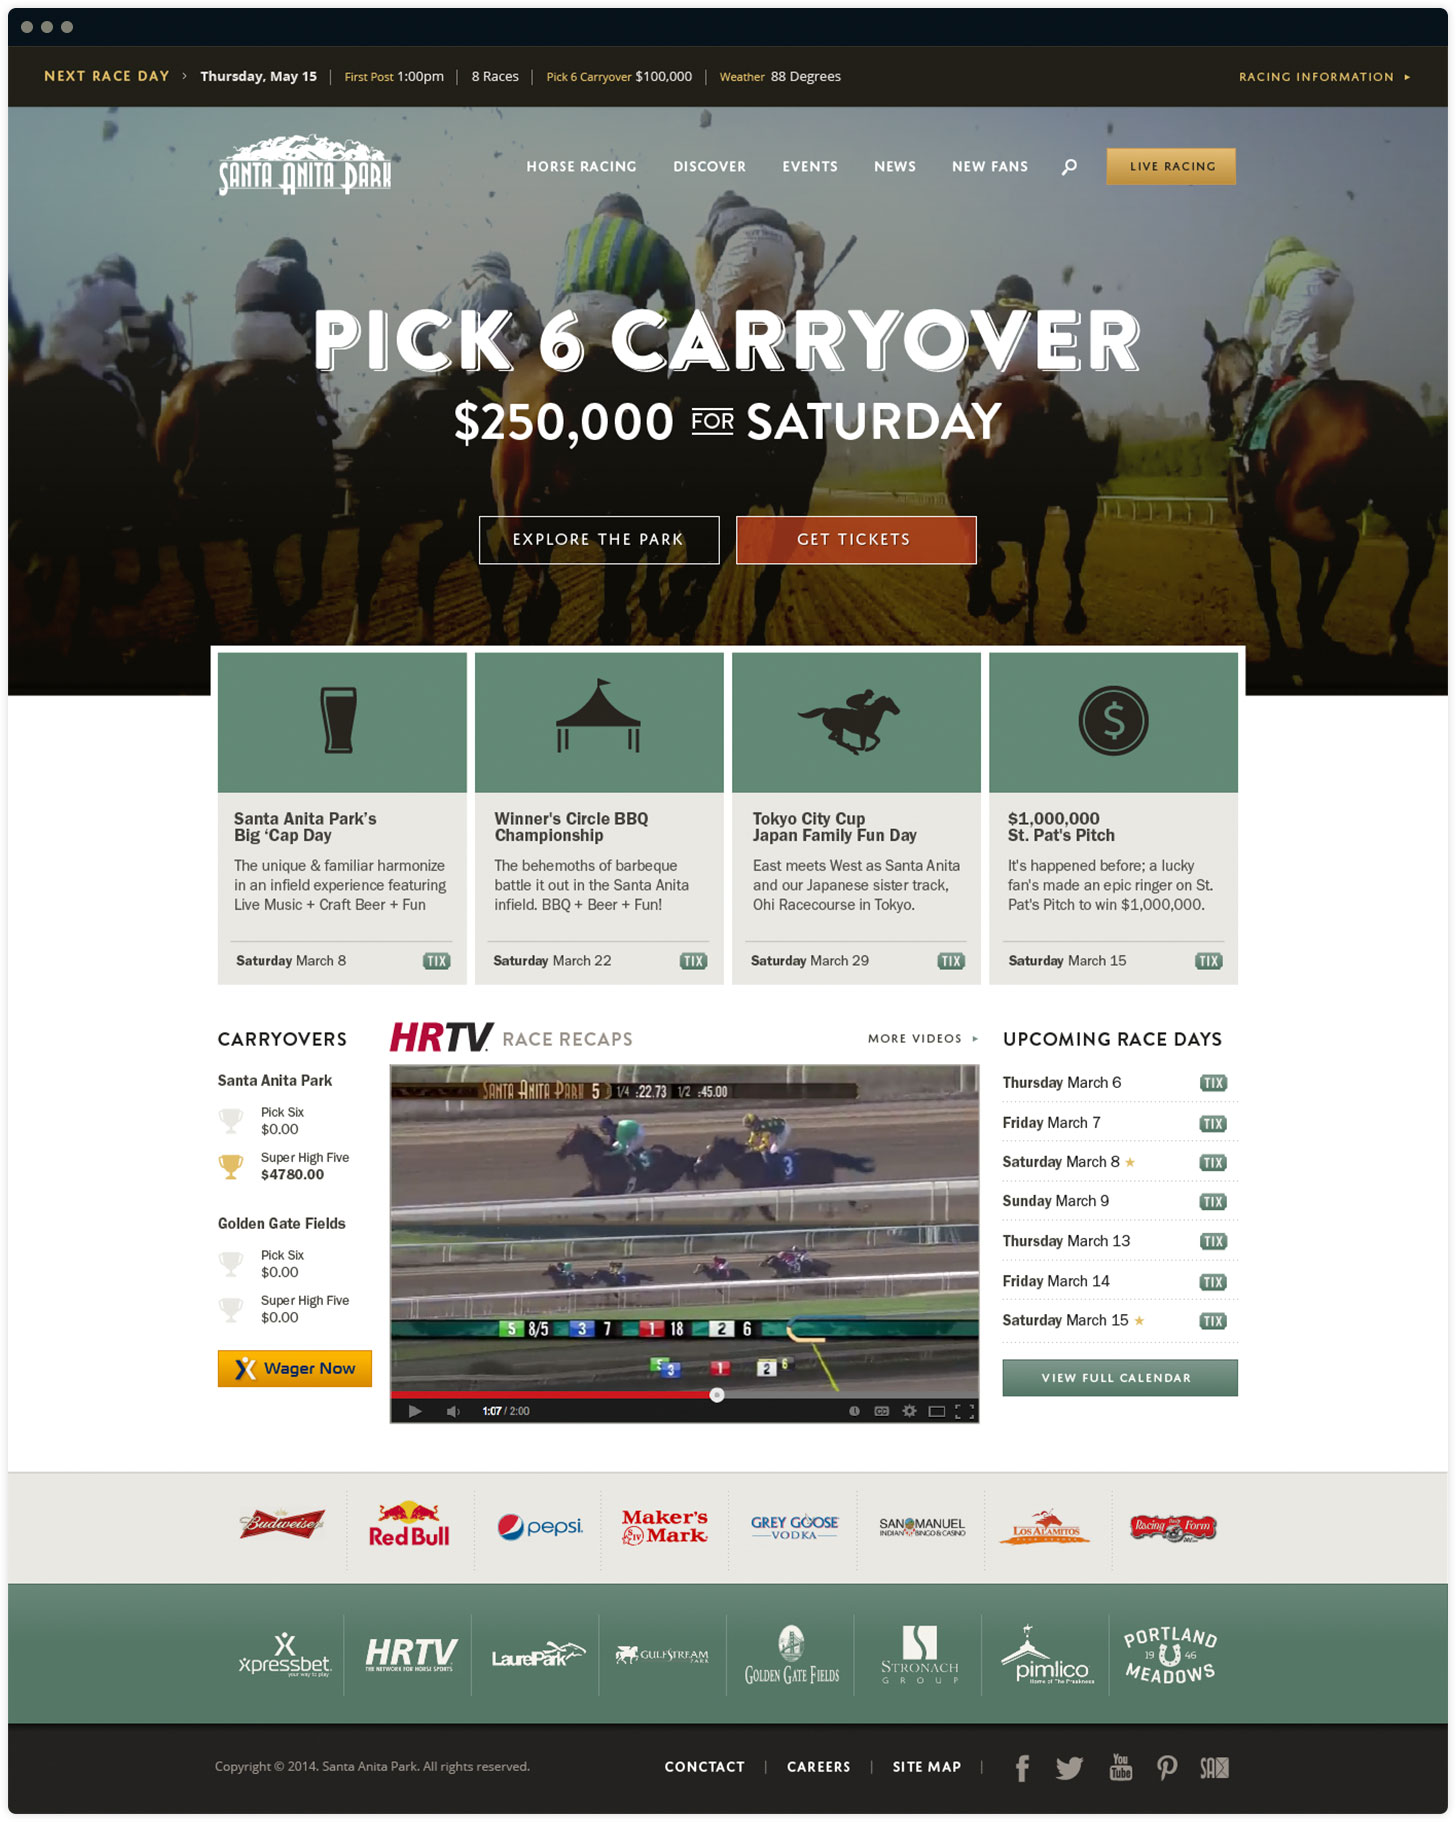 Santa Anita Park Website Design by Salted Stone